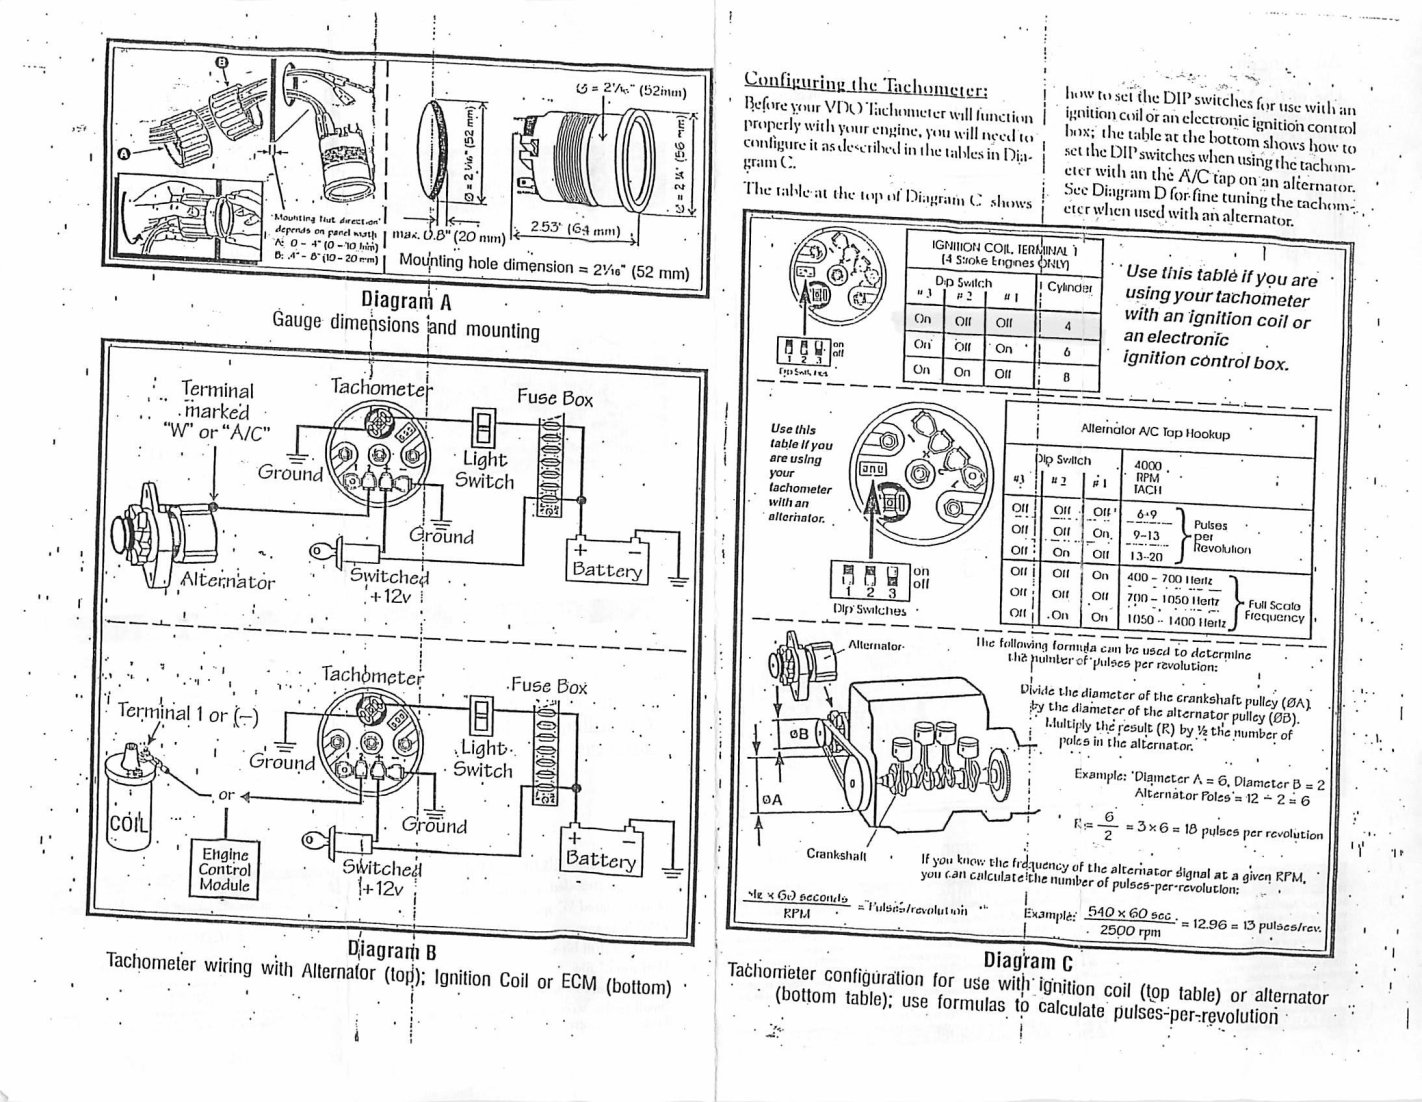 Boat Control Motor Yamaha as well Suzuki Marine 150 4 Stroke Wiring Fuse Box moreover Winch From Both Batteries furthermore International Starter Wiring Diagram in addition Pioneer Car Stereo Wiring Diagram. on marine switch panel